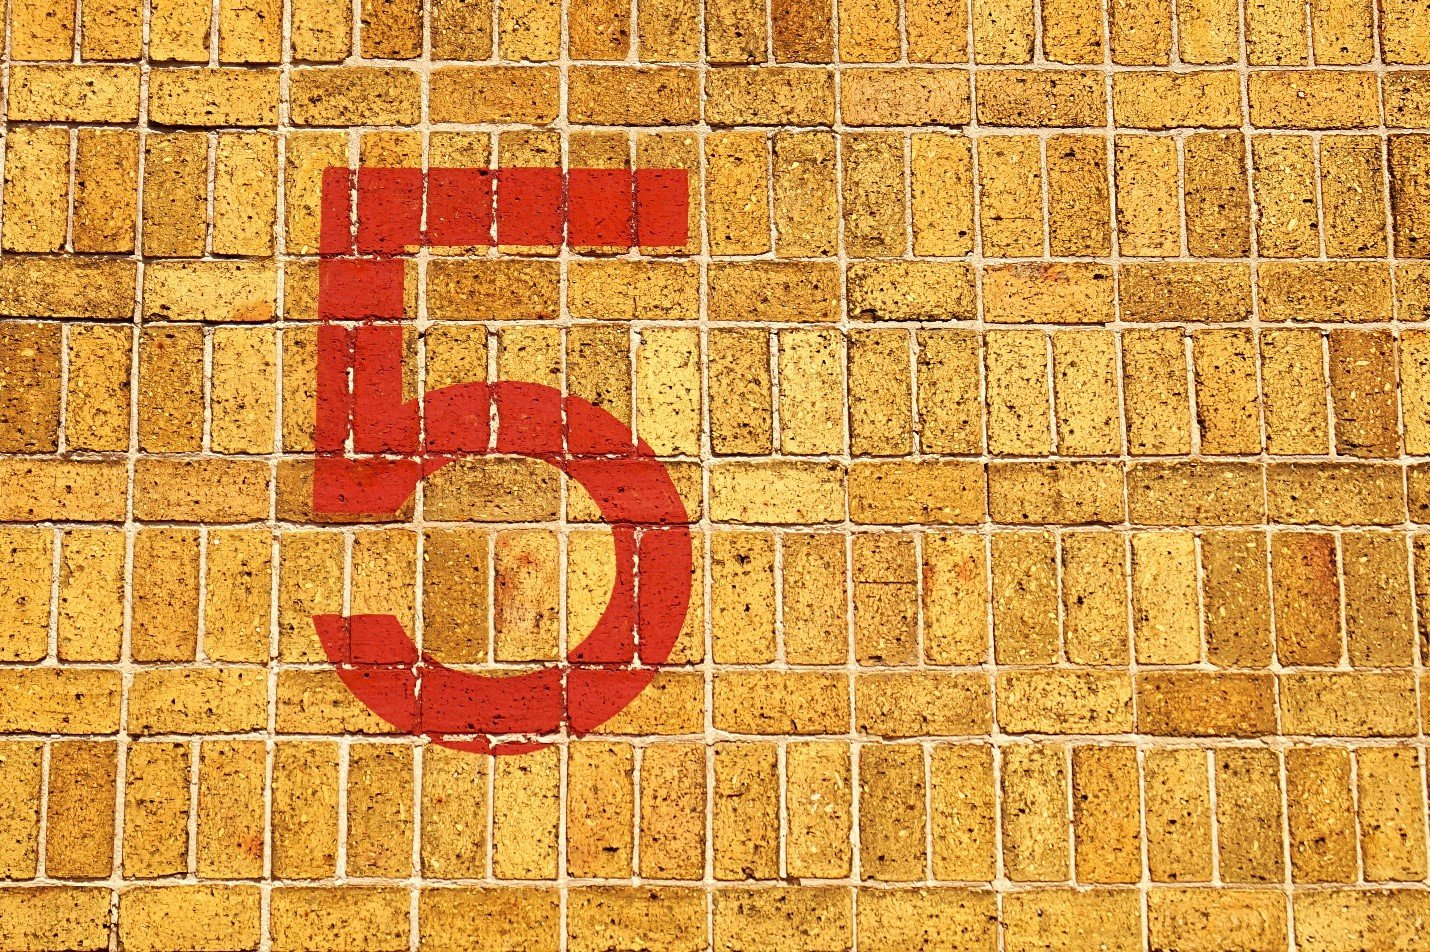 Picture of a red 5 on a brick wall for 5 reasons Toad for Oracle beats Oracle SQL Developer